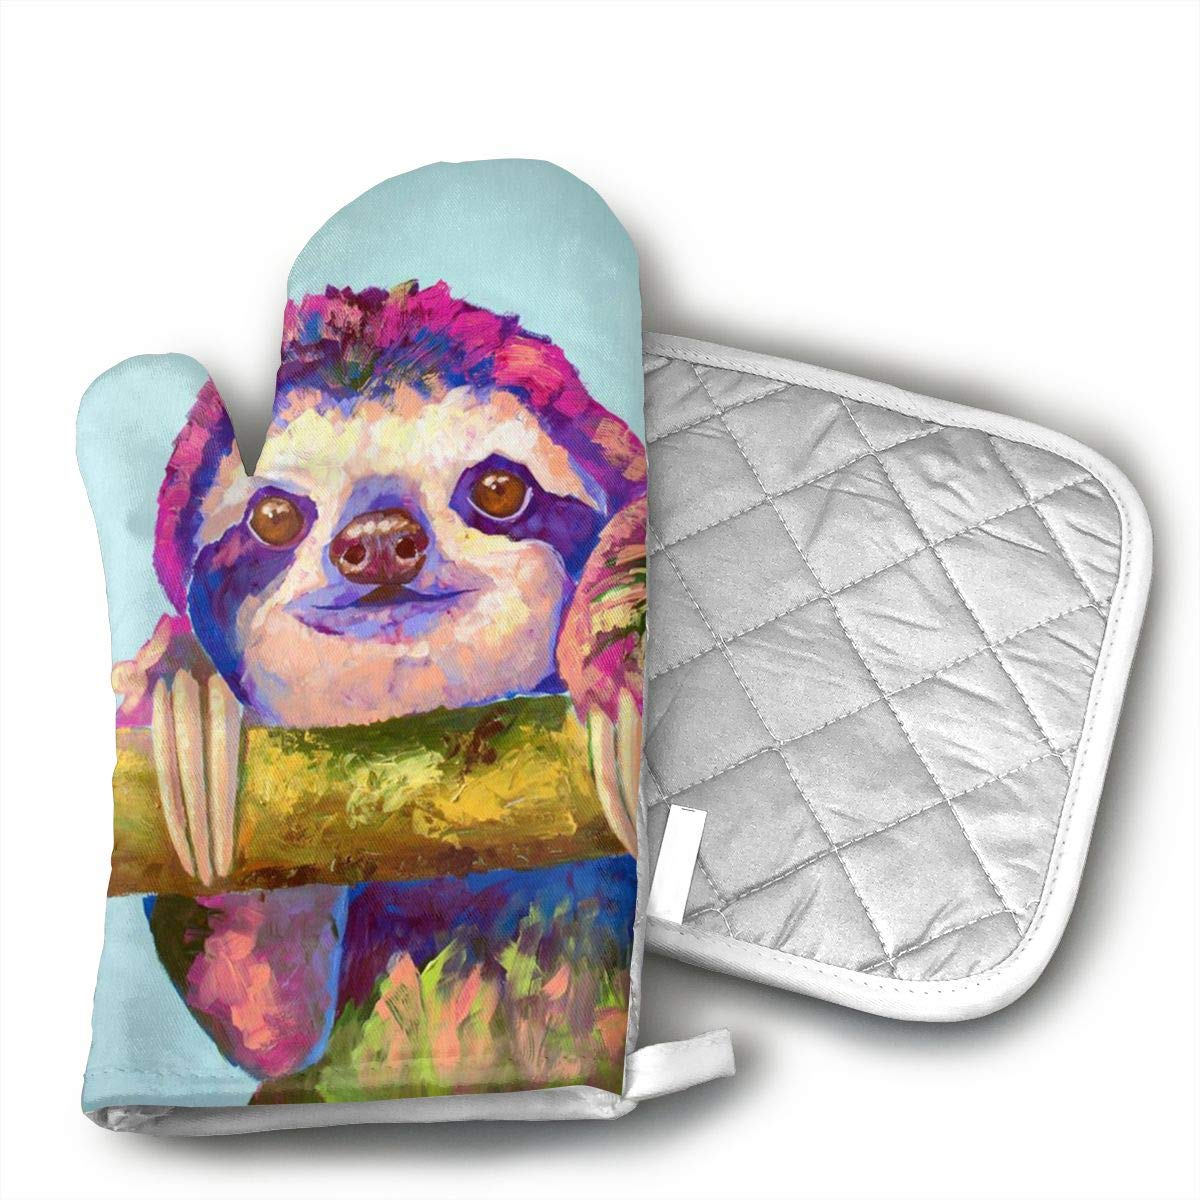 JFNNRUOP Sloth Art-Colorful Sloth Oven Mitts,with Potholders Oven Gloves,Insulated Quilted Cotton Potholders